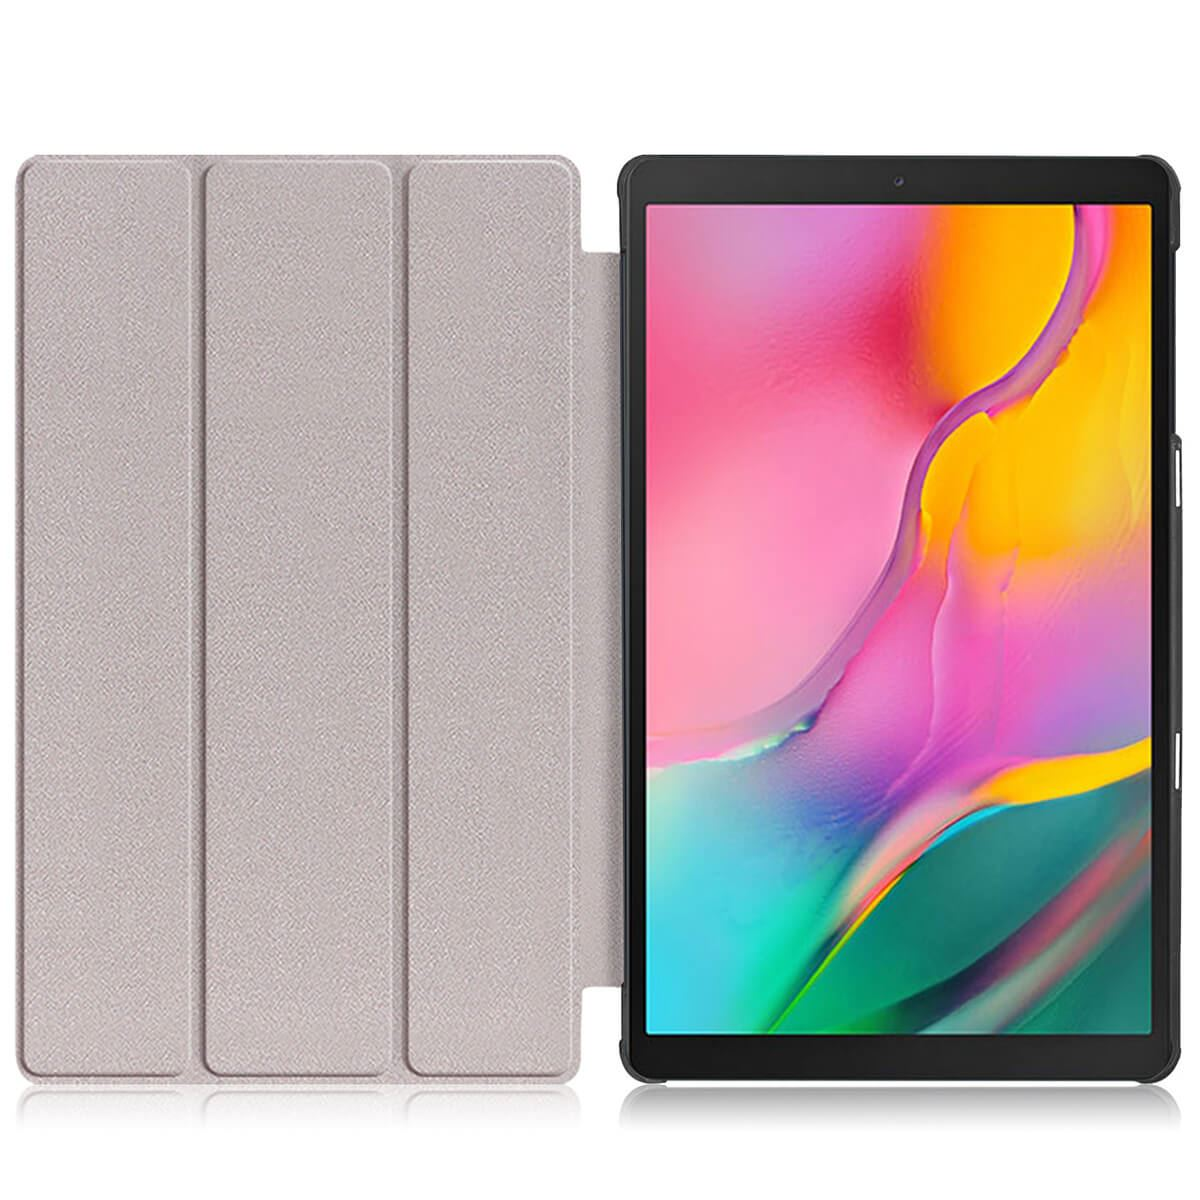 Flip-Cover-Trifold-Case-For-T510-T515-Samsung-Galaxy-Tab-A-2019-10-1-Full-Body thumbnail 3